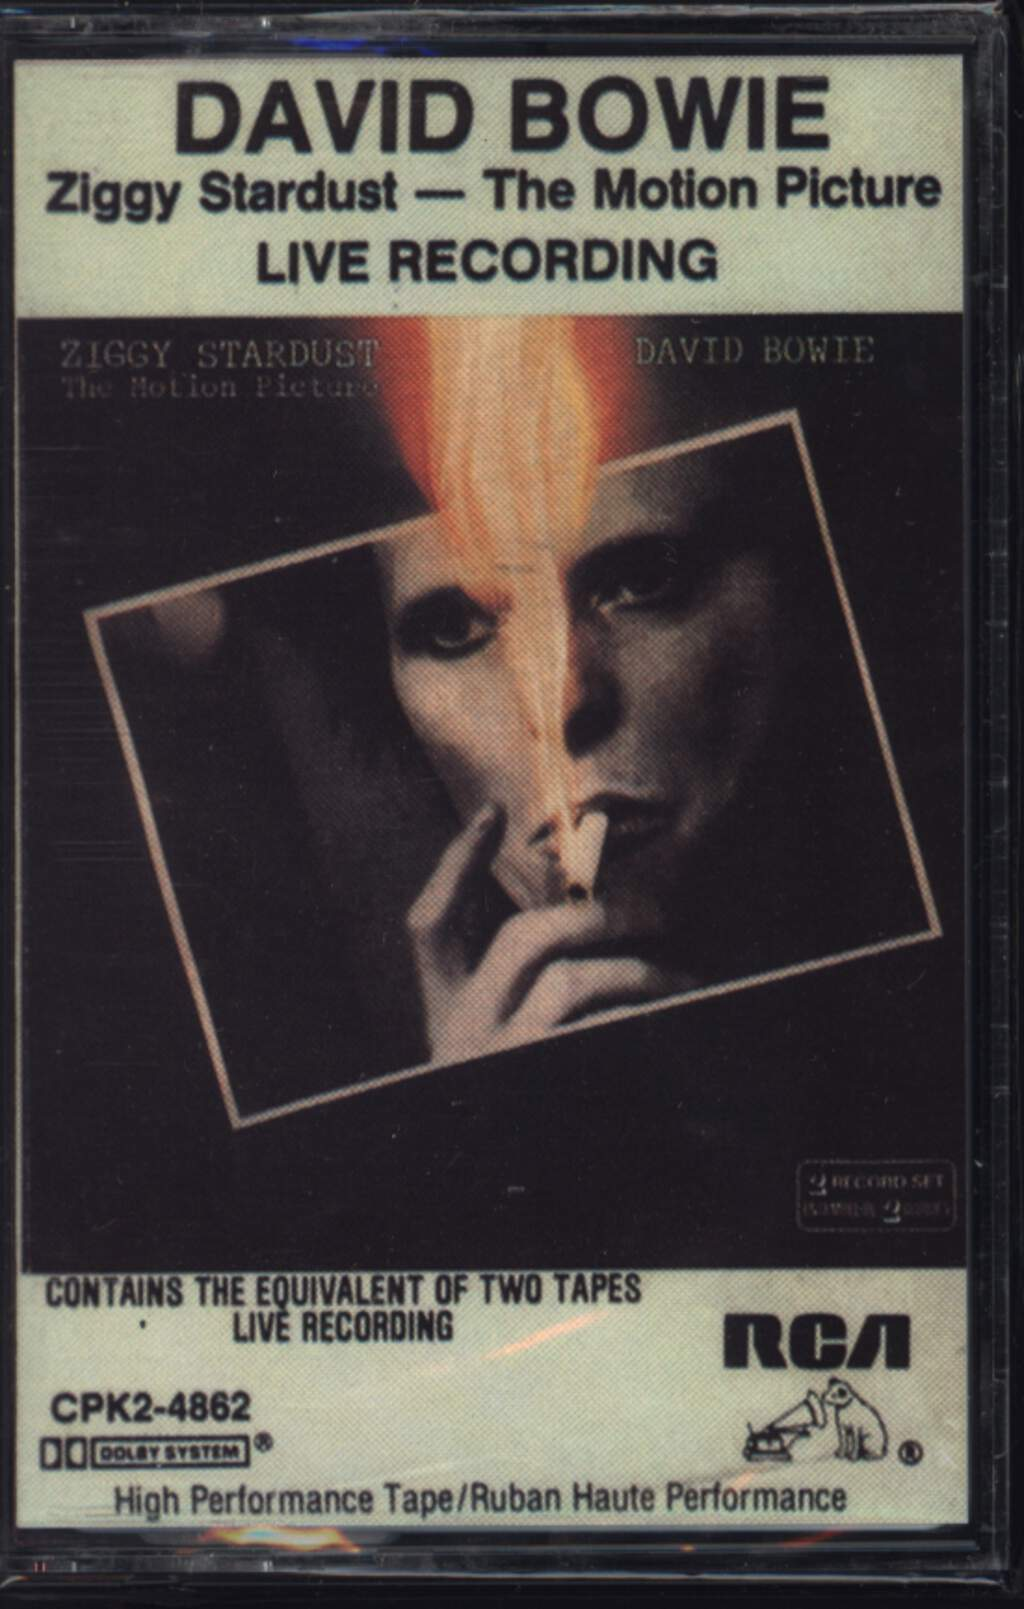 David Bowie: Ziggy Stardust - The Motion Picture, Compact Cassette